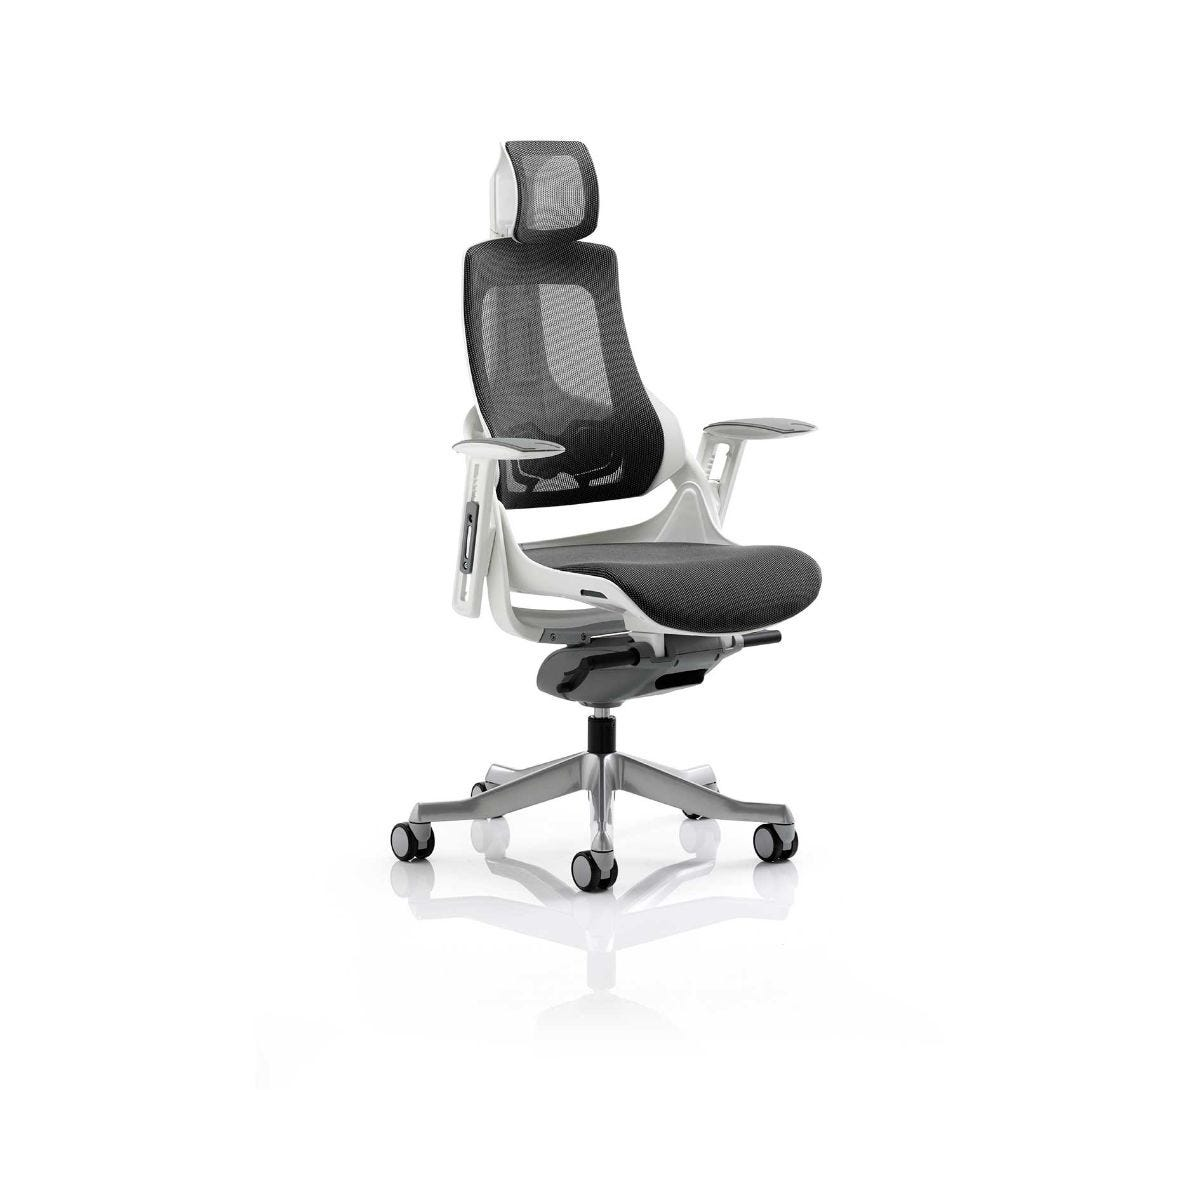 Zure Mesh Executive Office Chair With Headrest, Black